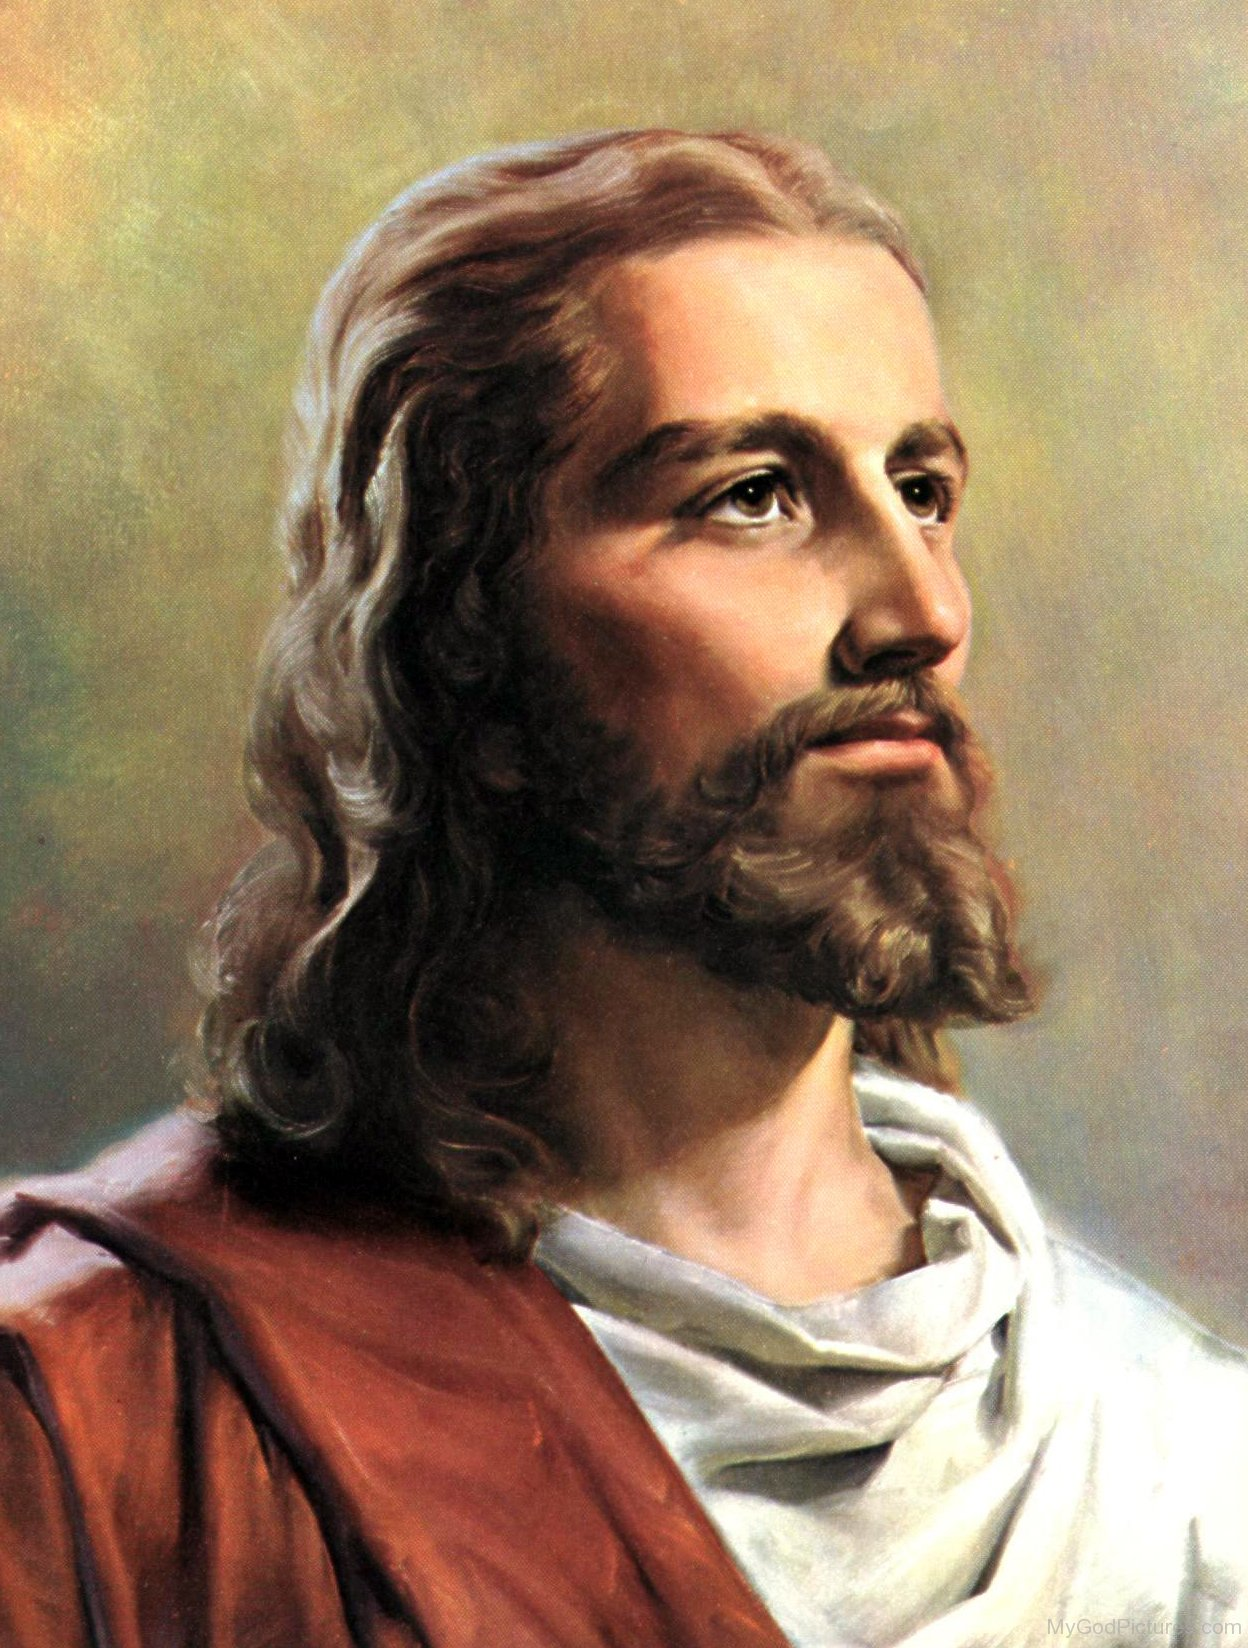 god and lord jesus Why jesus is lord question: why jesus is lord - what are the reasons  answer: jesus christ claimed to be the son of god a savior for all people who .